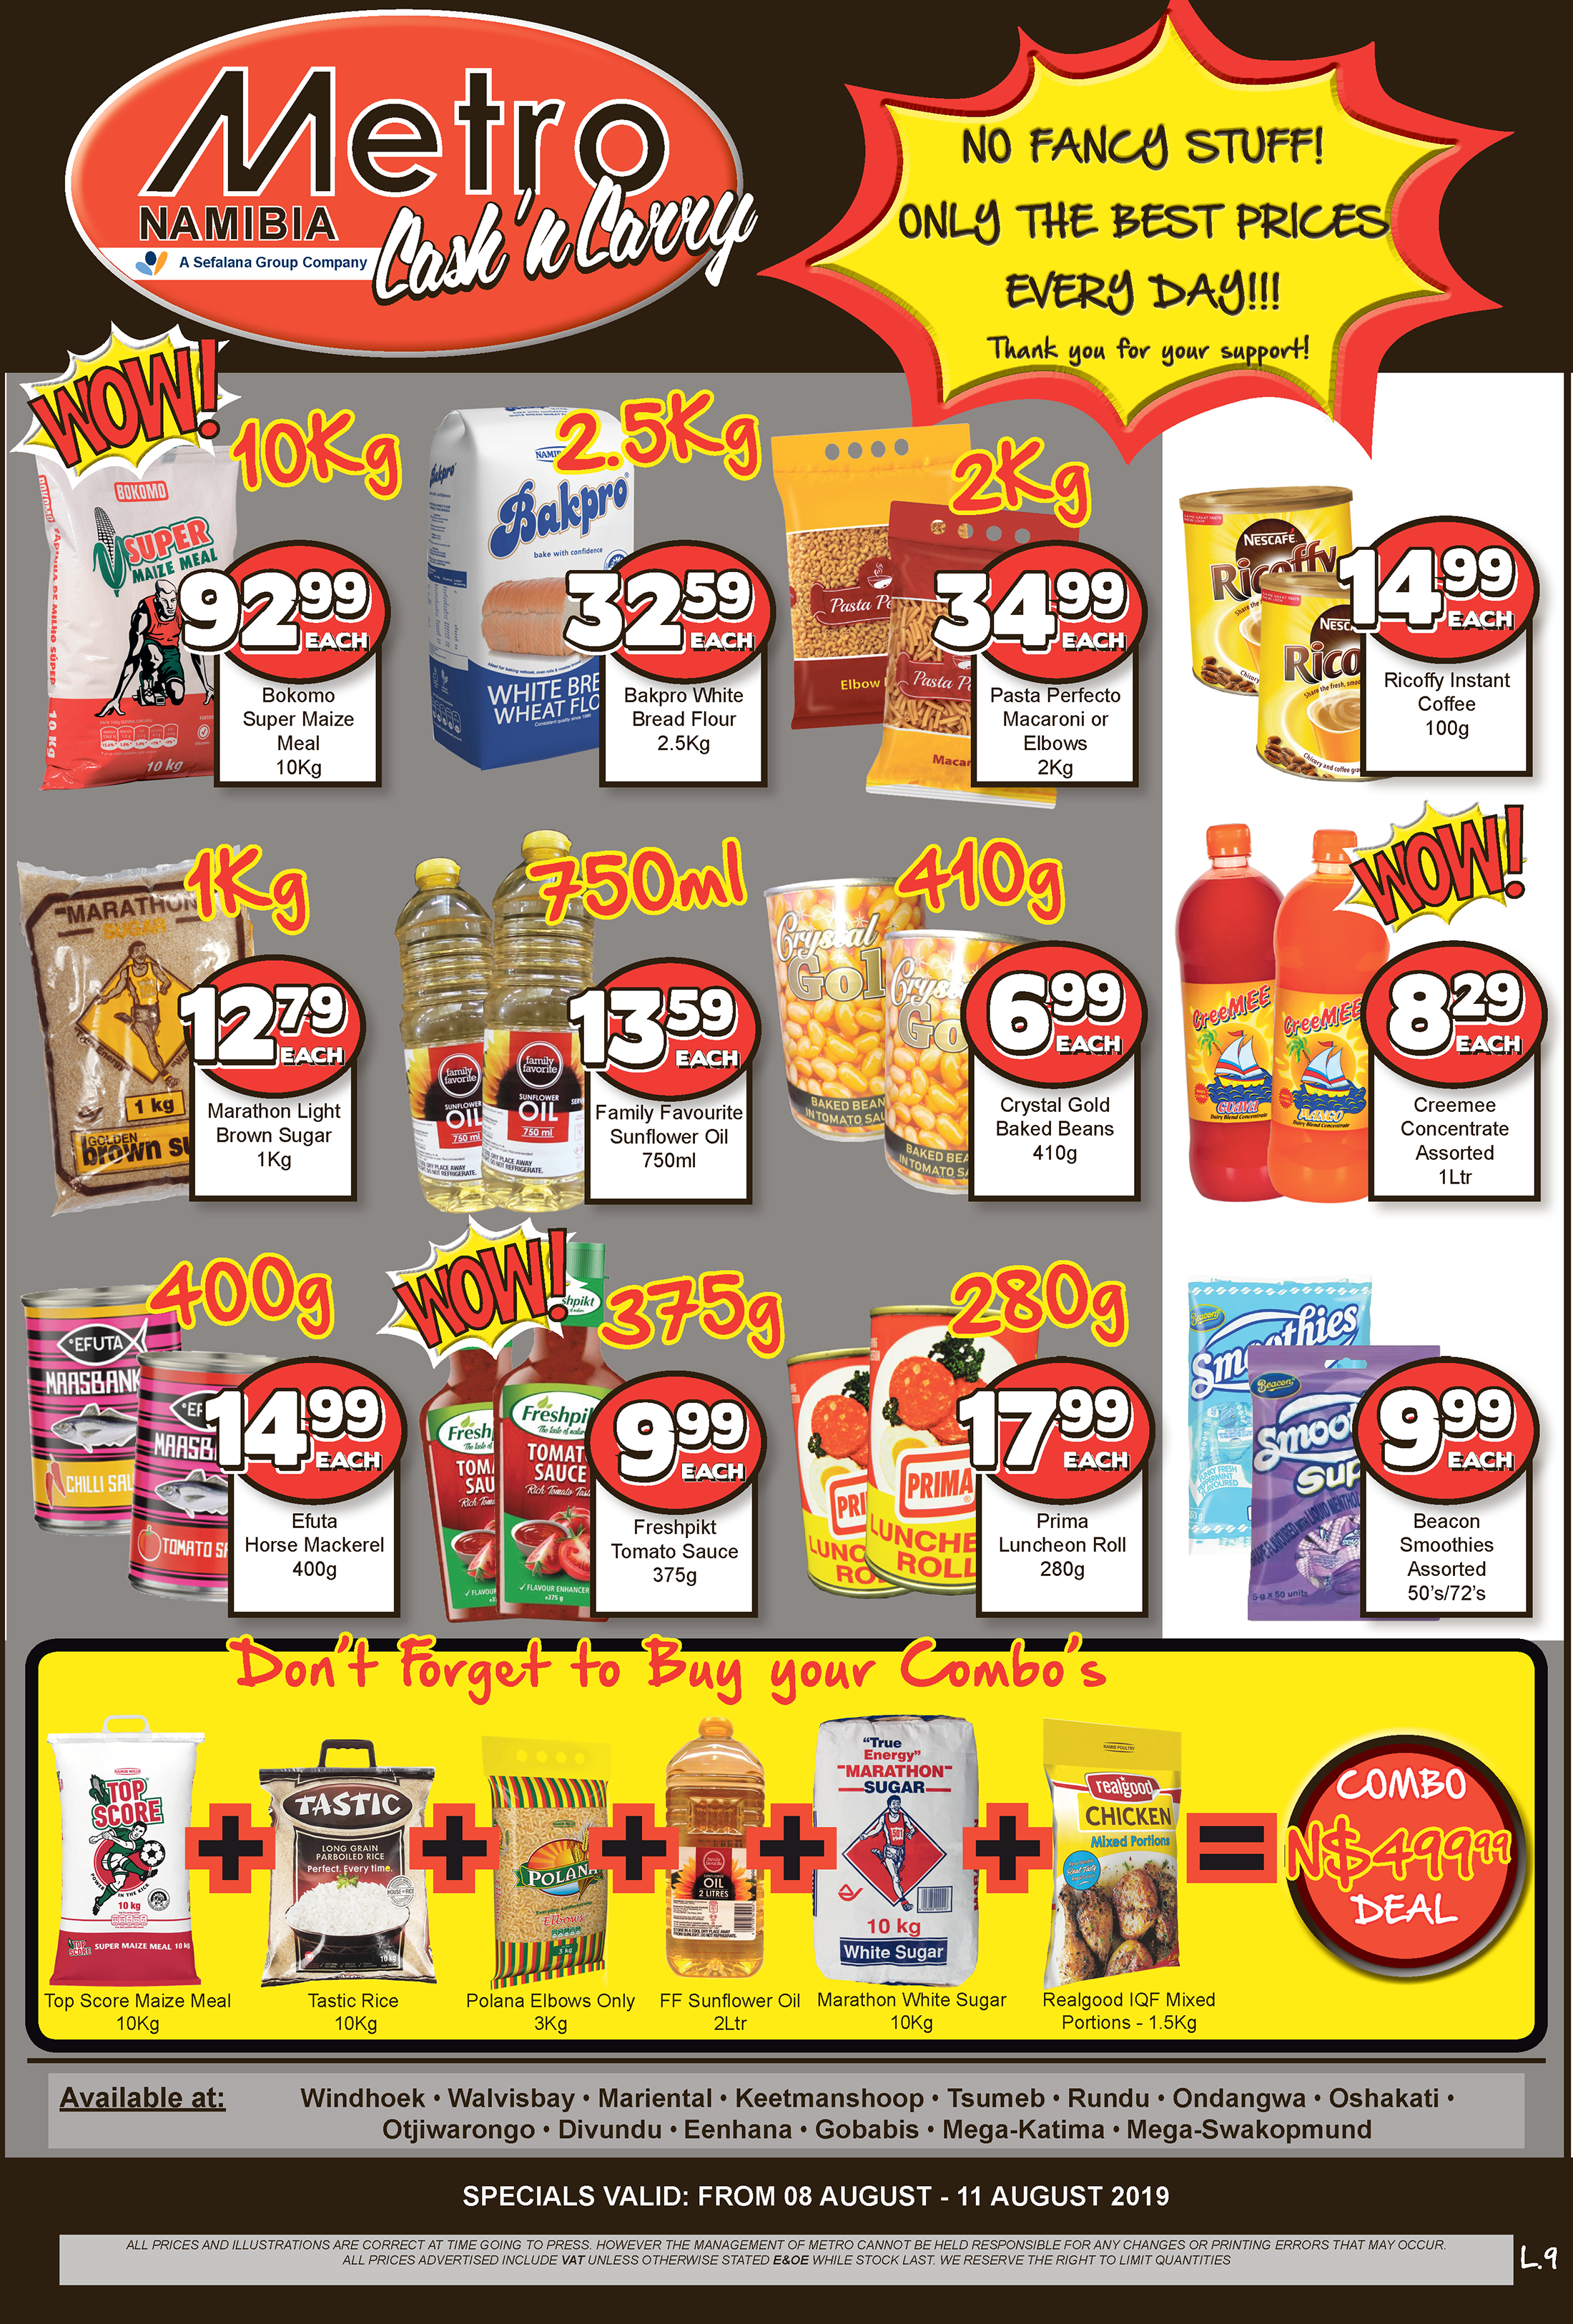 Metro Cash 'n Carry - Specials valid from 8 August to 11